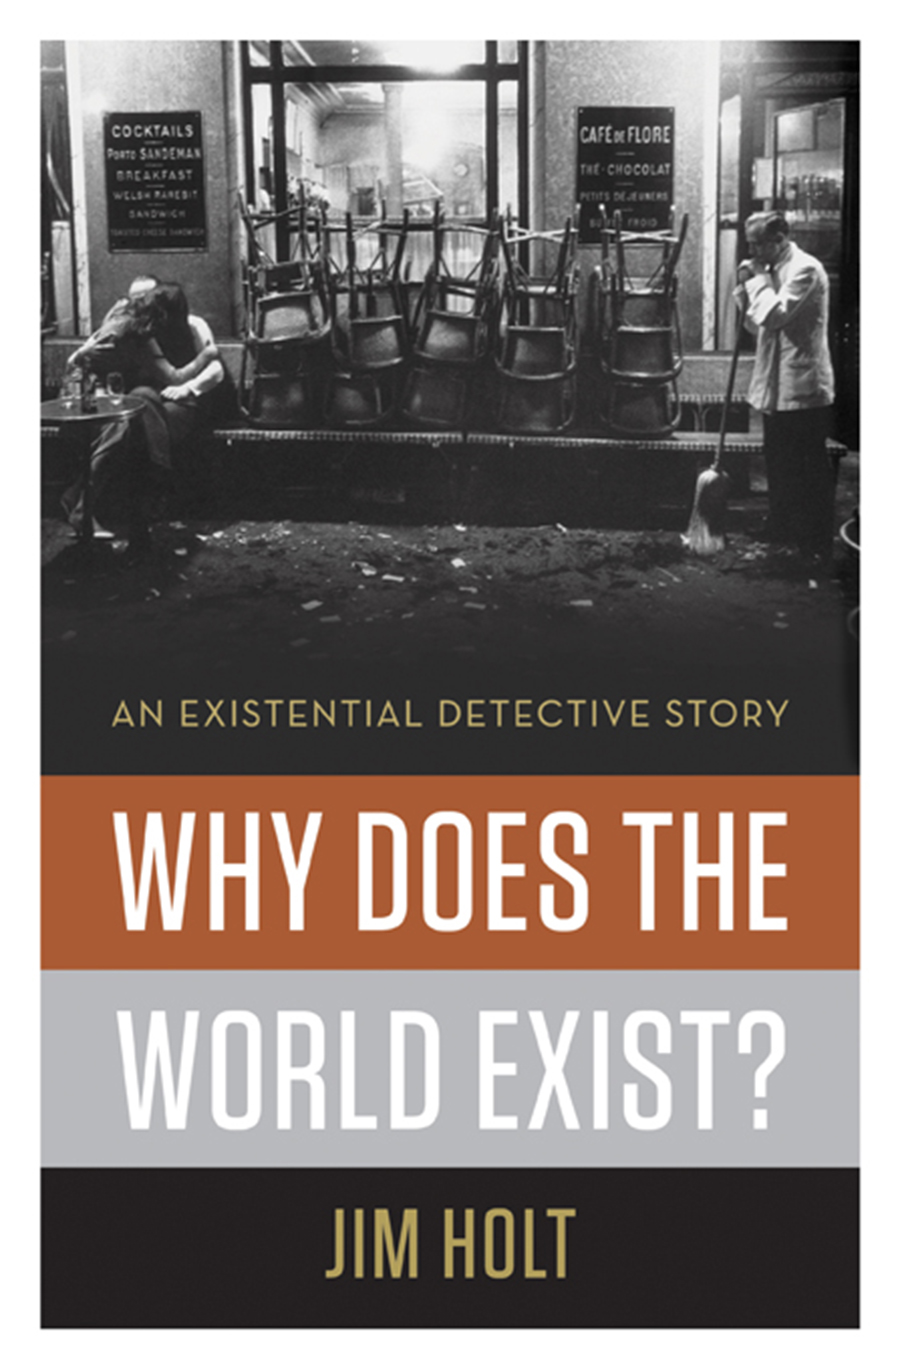 Why Does the World Exist?: An Existential Detective Story By: Jim Holt